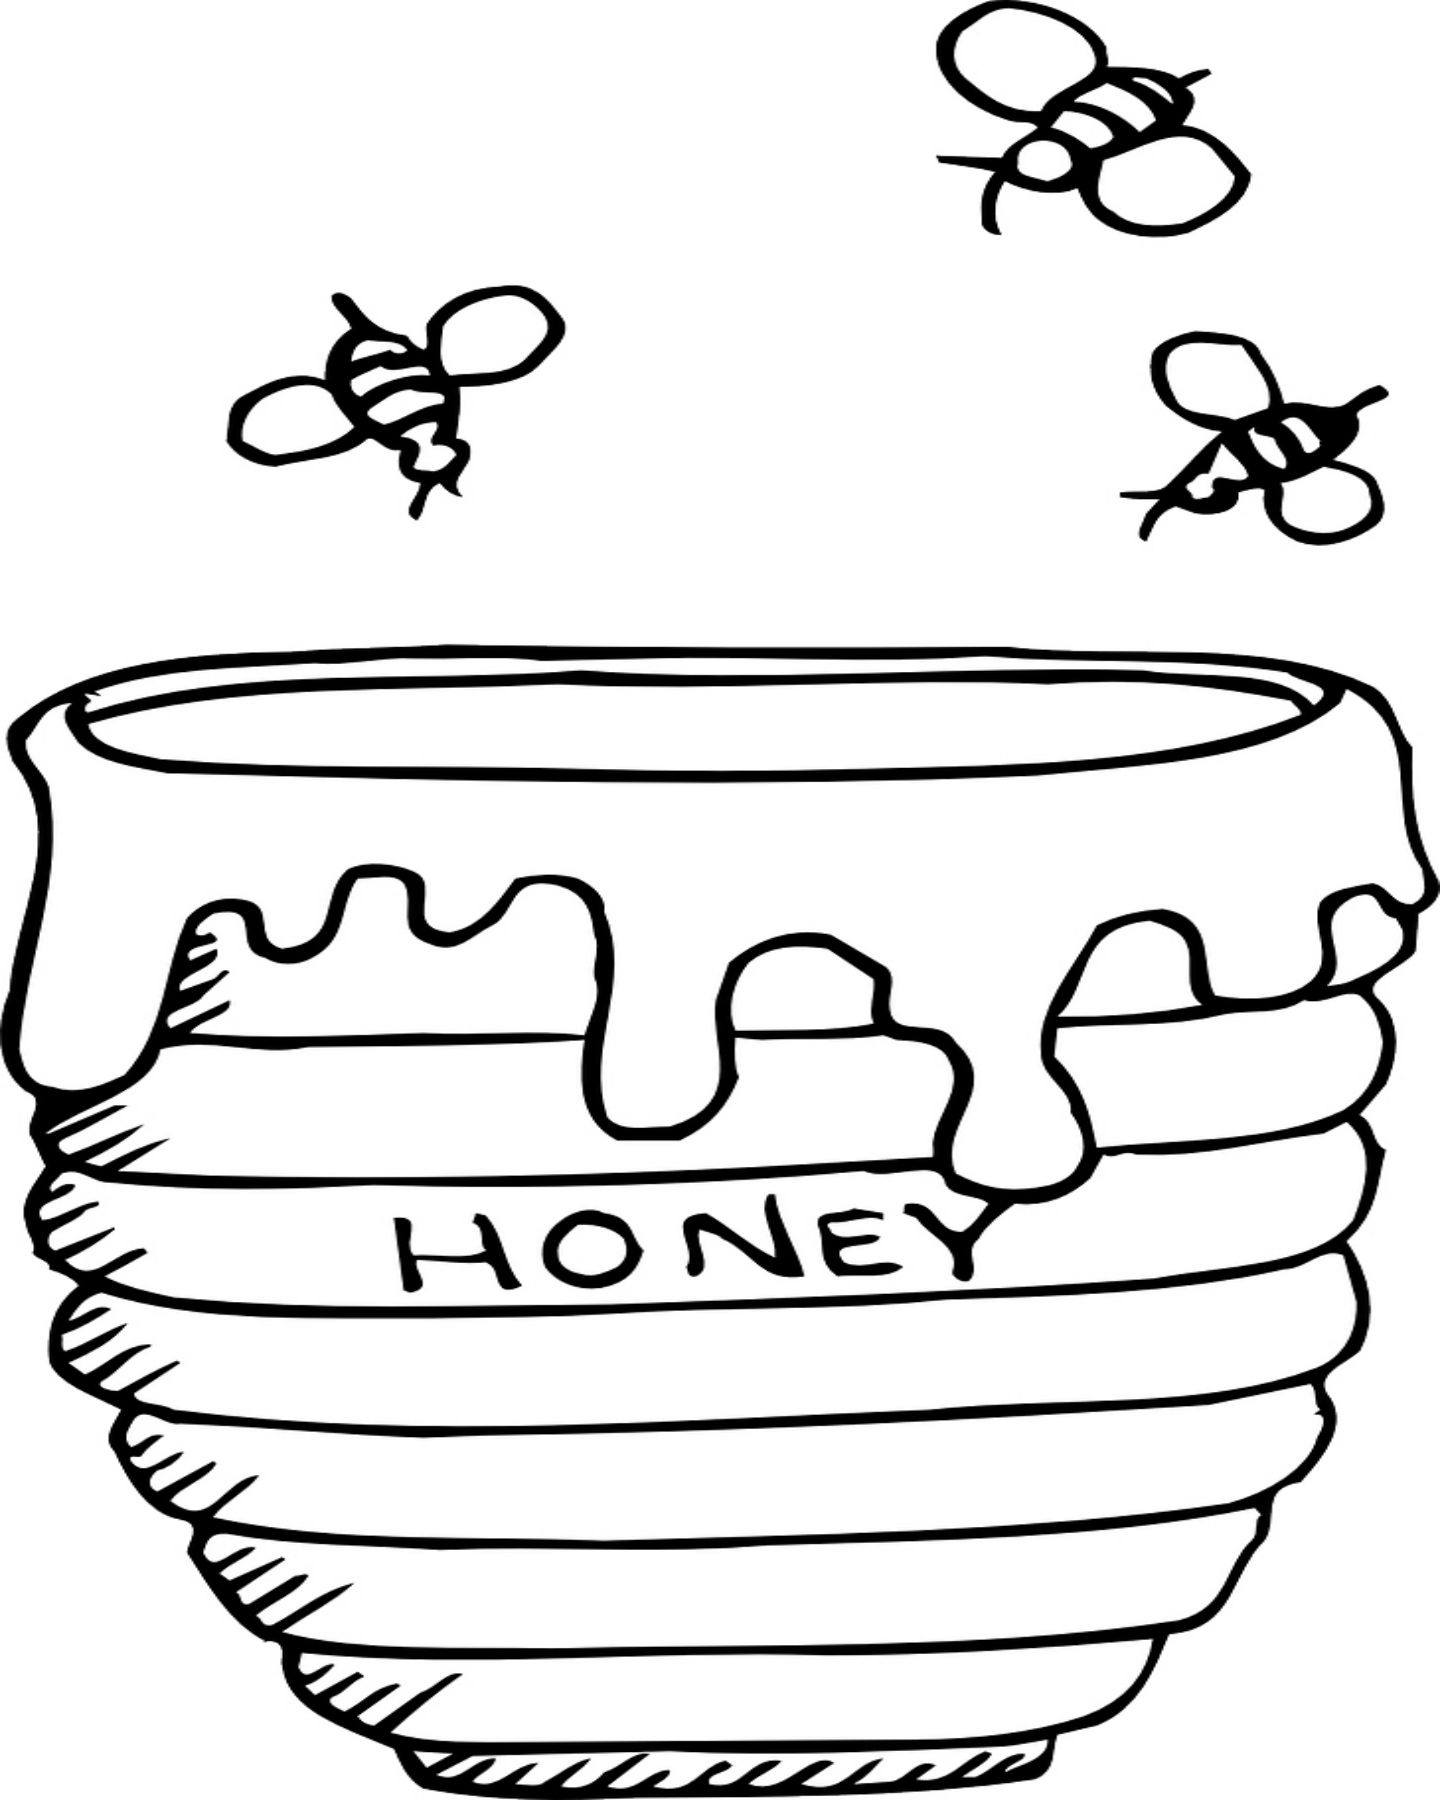 Bees Buzzing Around a Honey Pot Coloring Page | Bee ...